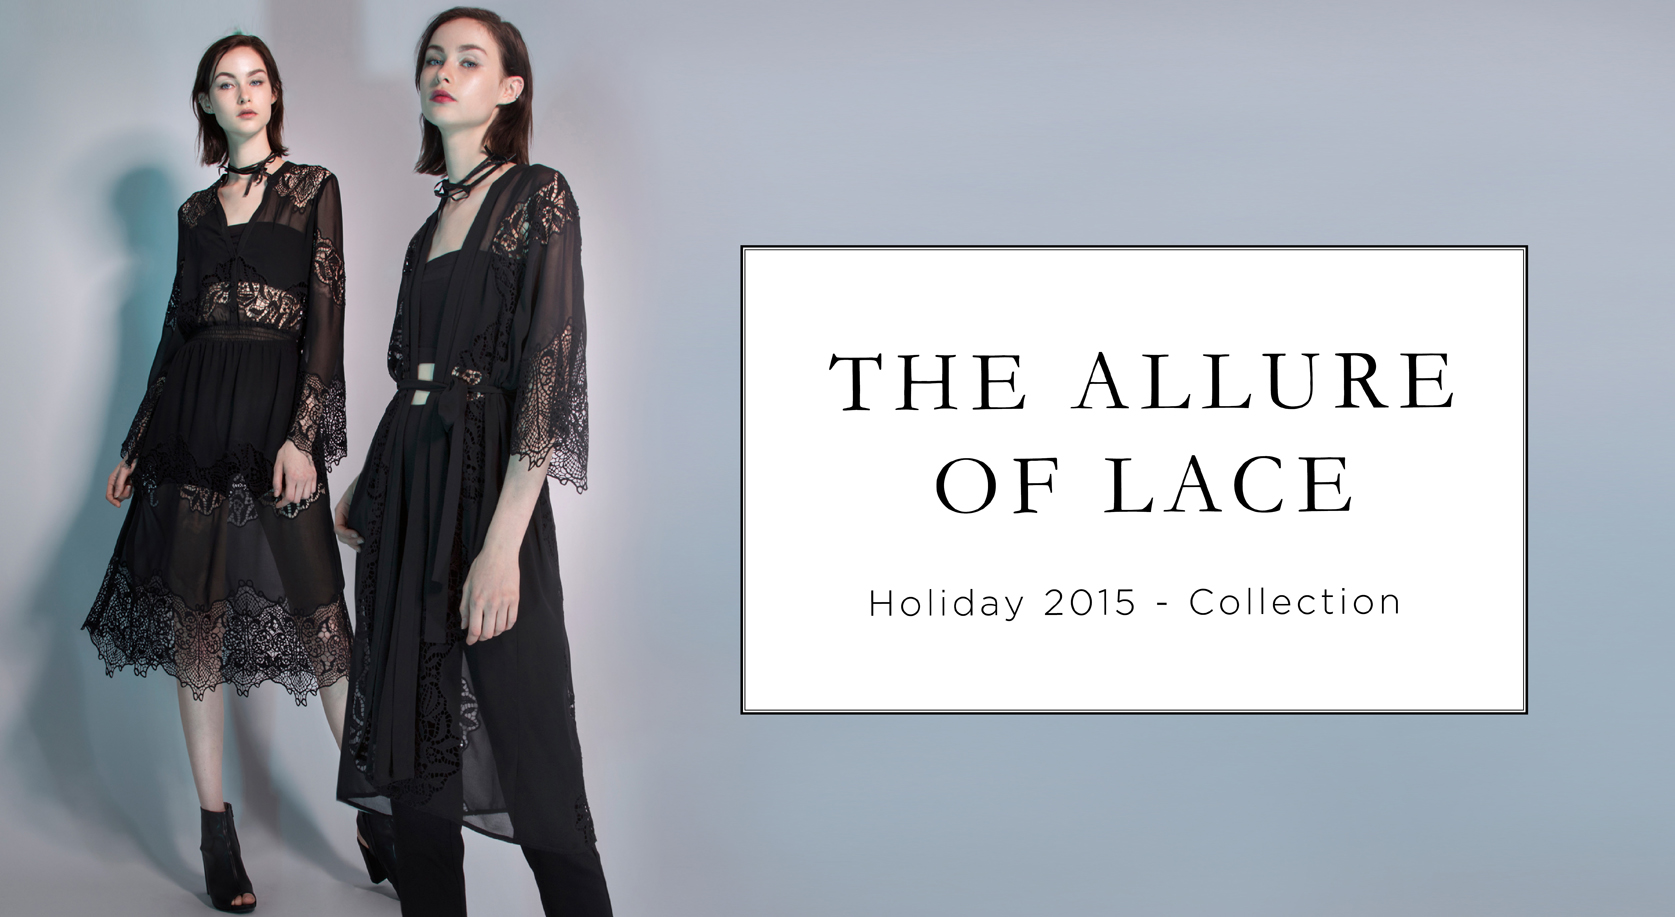 The Allure of Lace